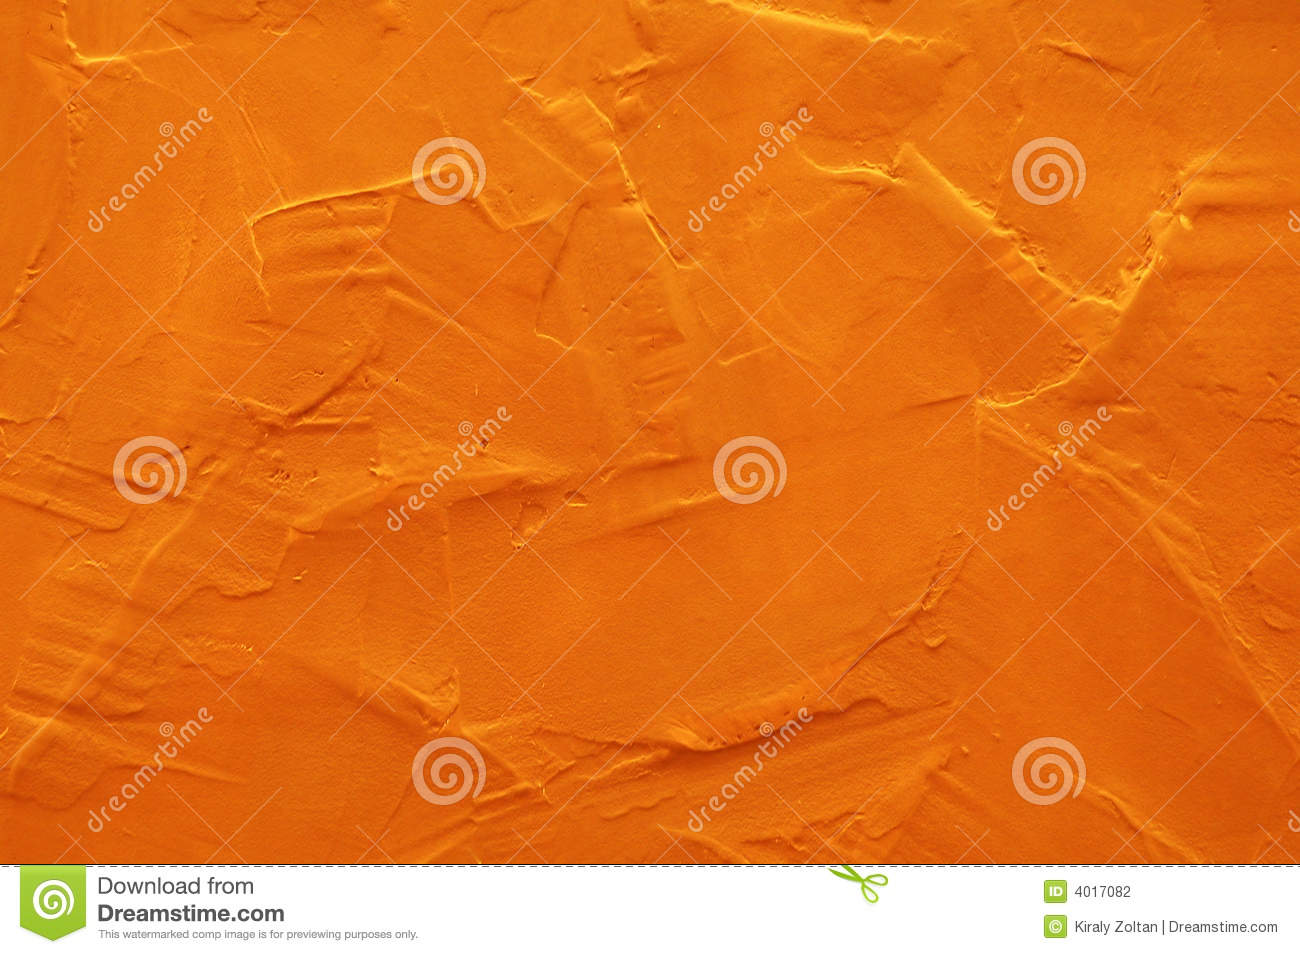 Orange wand stockfoto bild von struktur wand gemalt for Wand orange